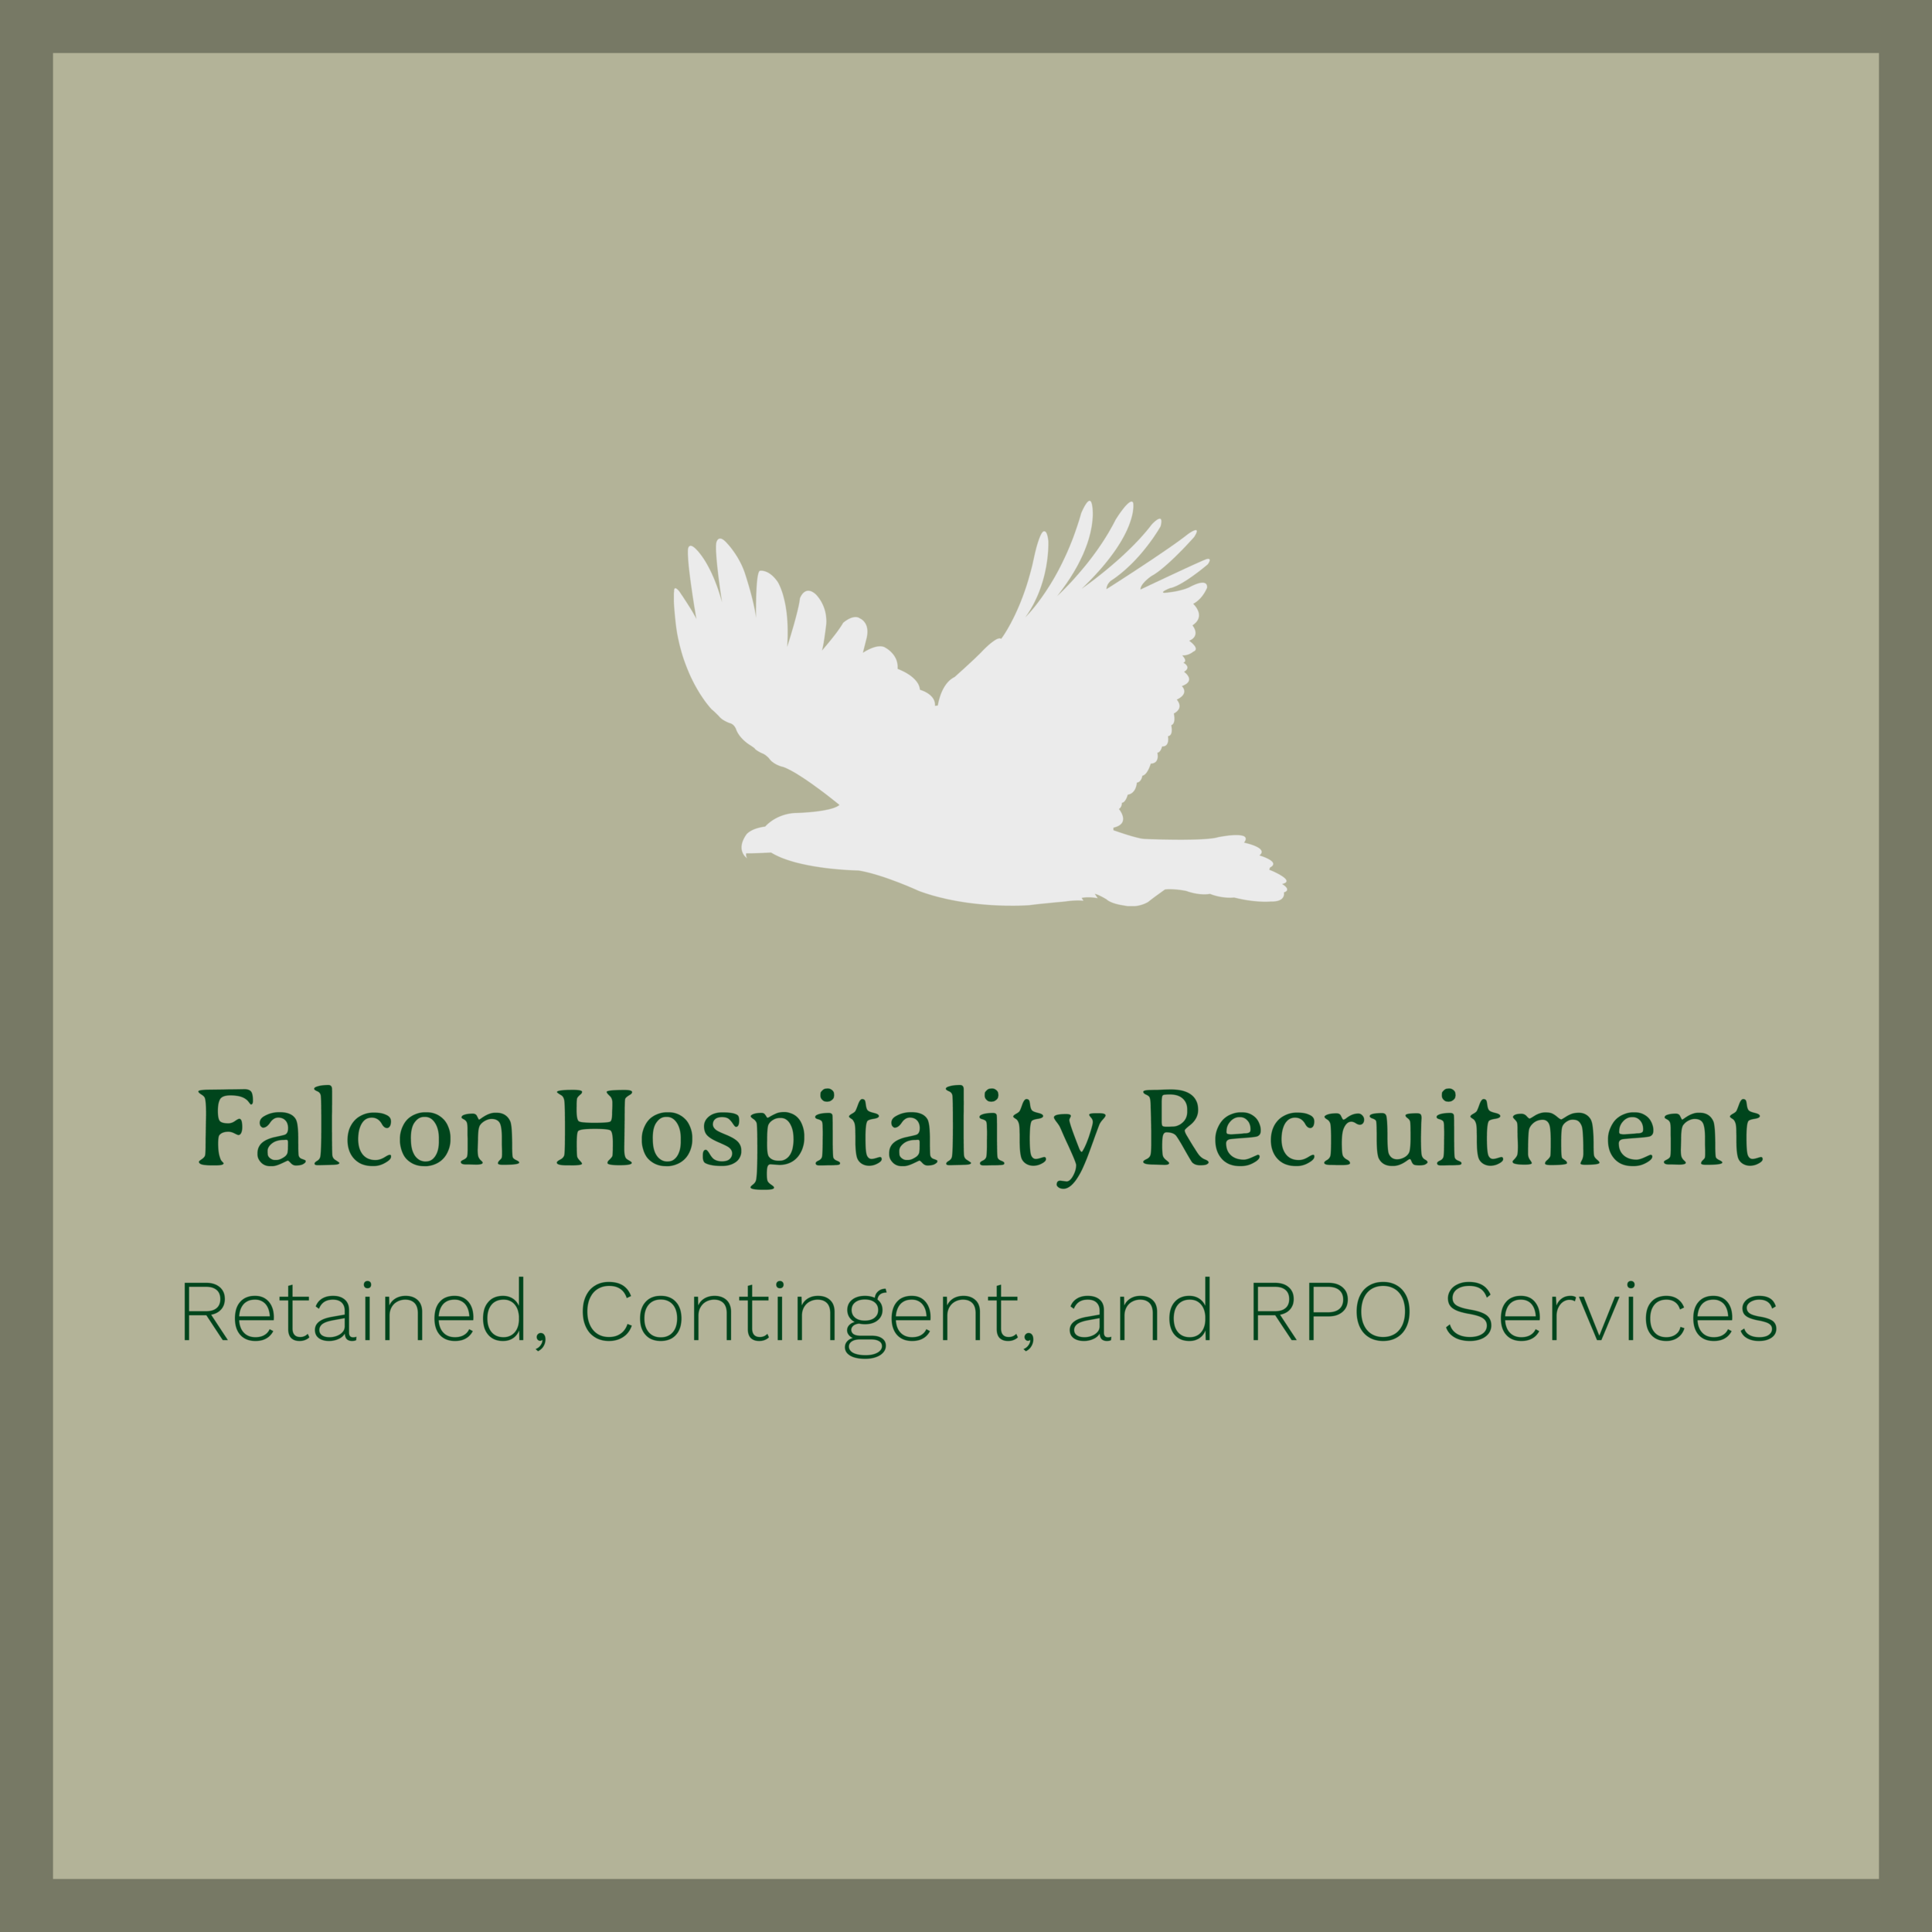 Falcon Hospitality Recruitment - Falcon Hospitality Recruitment™ provides talent for the Food and Beverage, Travel, Tourism, Lodging, and Recreation sectors of the hospitality industry through either retained, contingent, or RPO delivery methods.